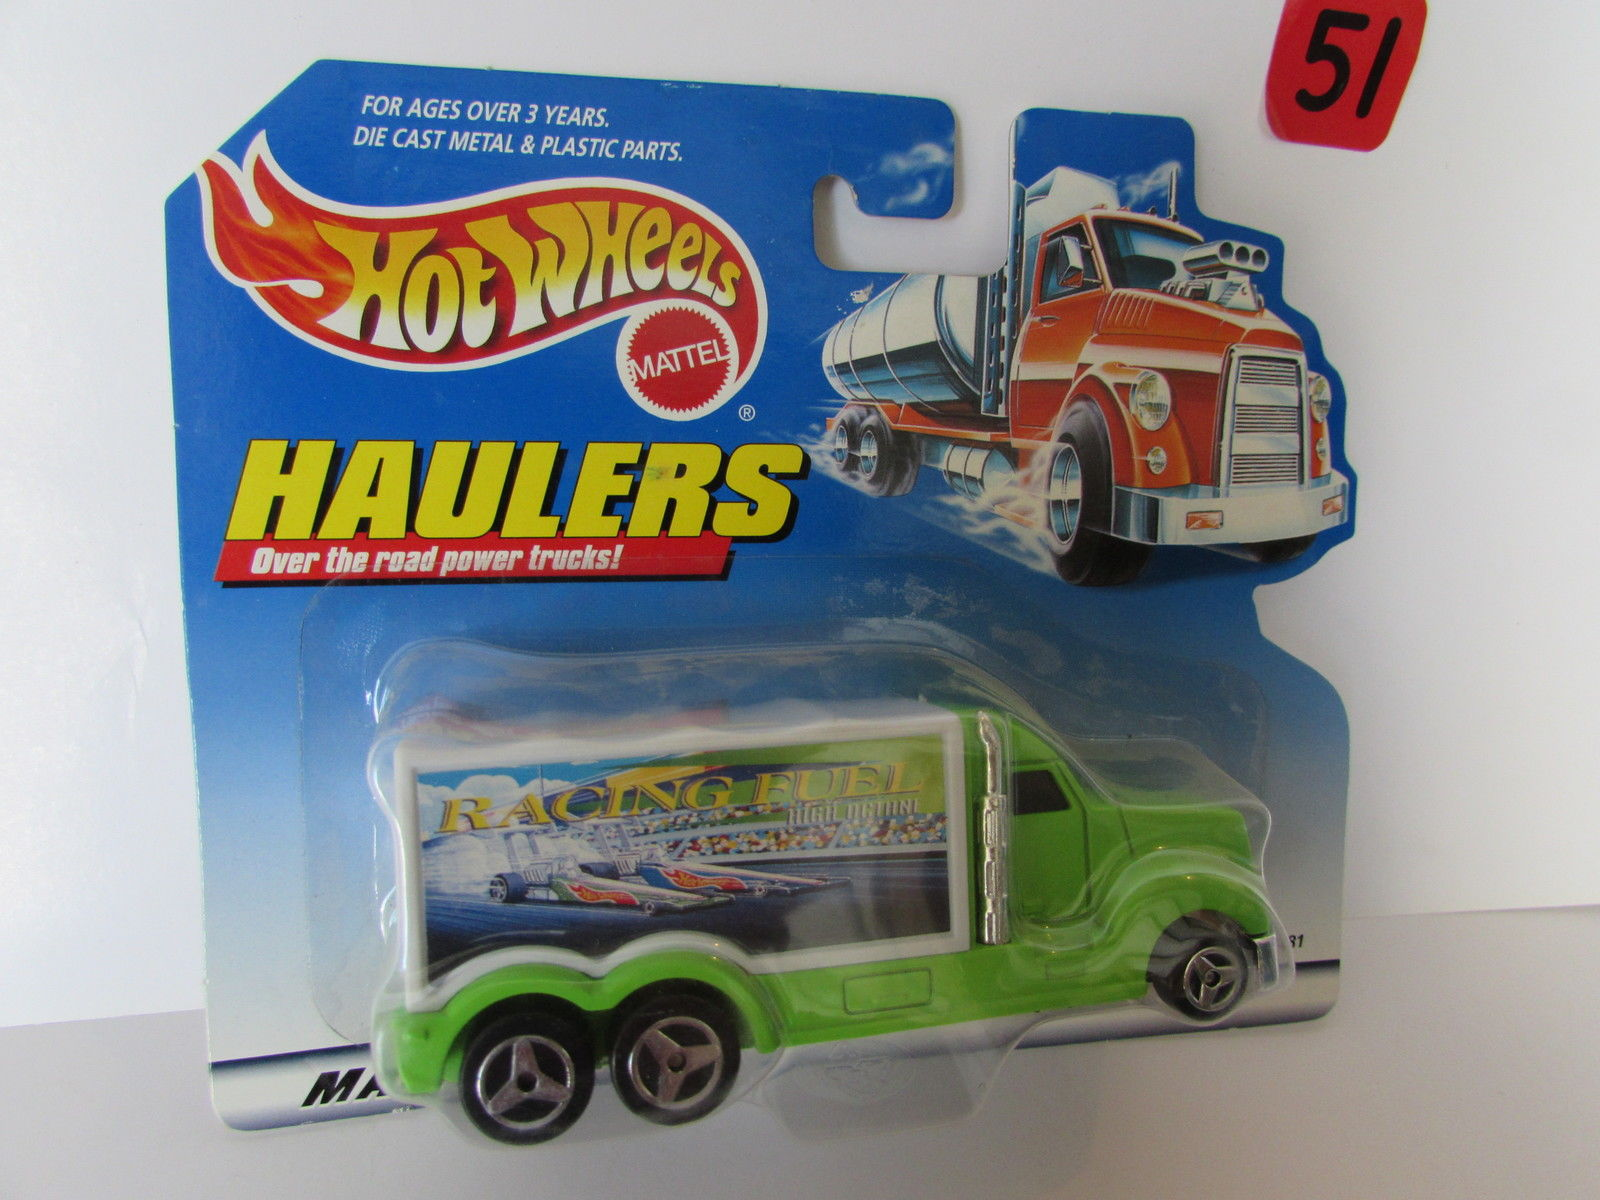 HOT WHEELS 1998 HAULERS OVER THE ROAD POWER TRUCKS - RACING FUEL